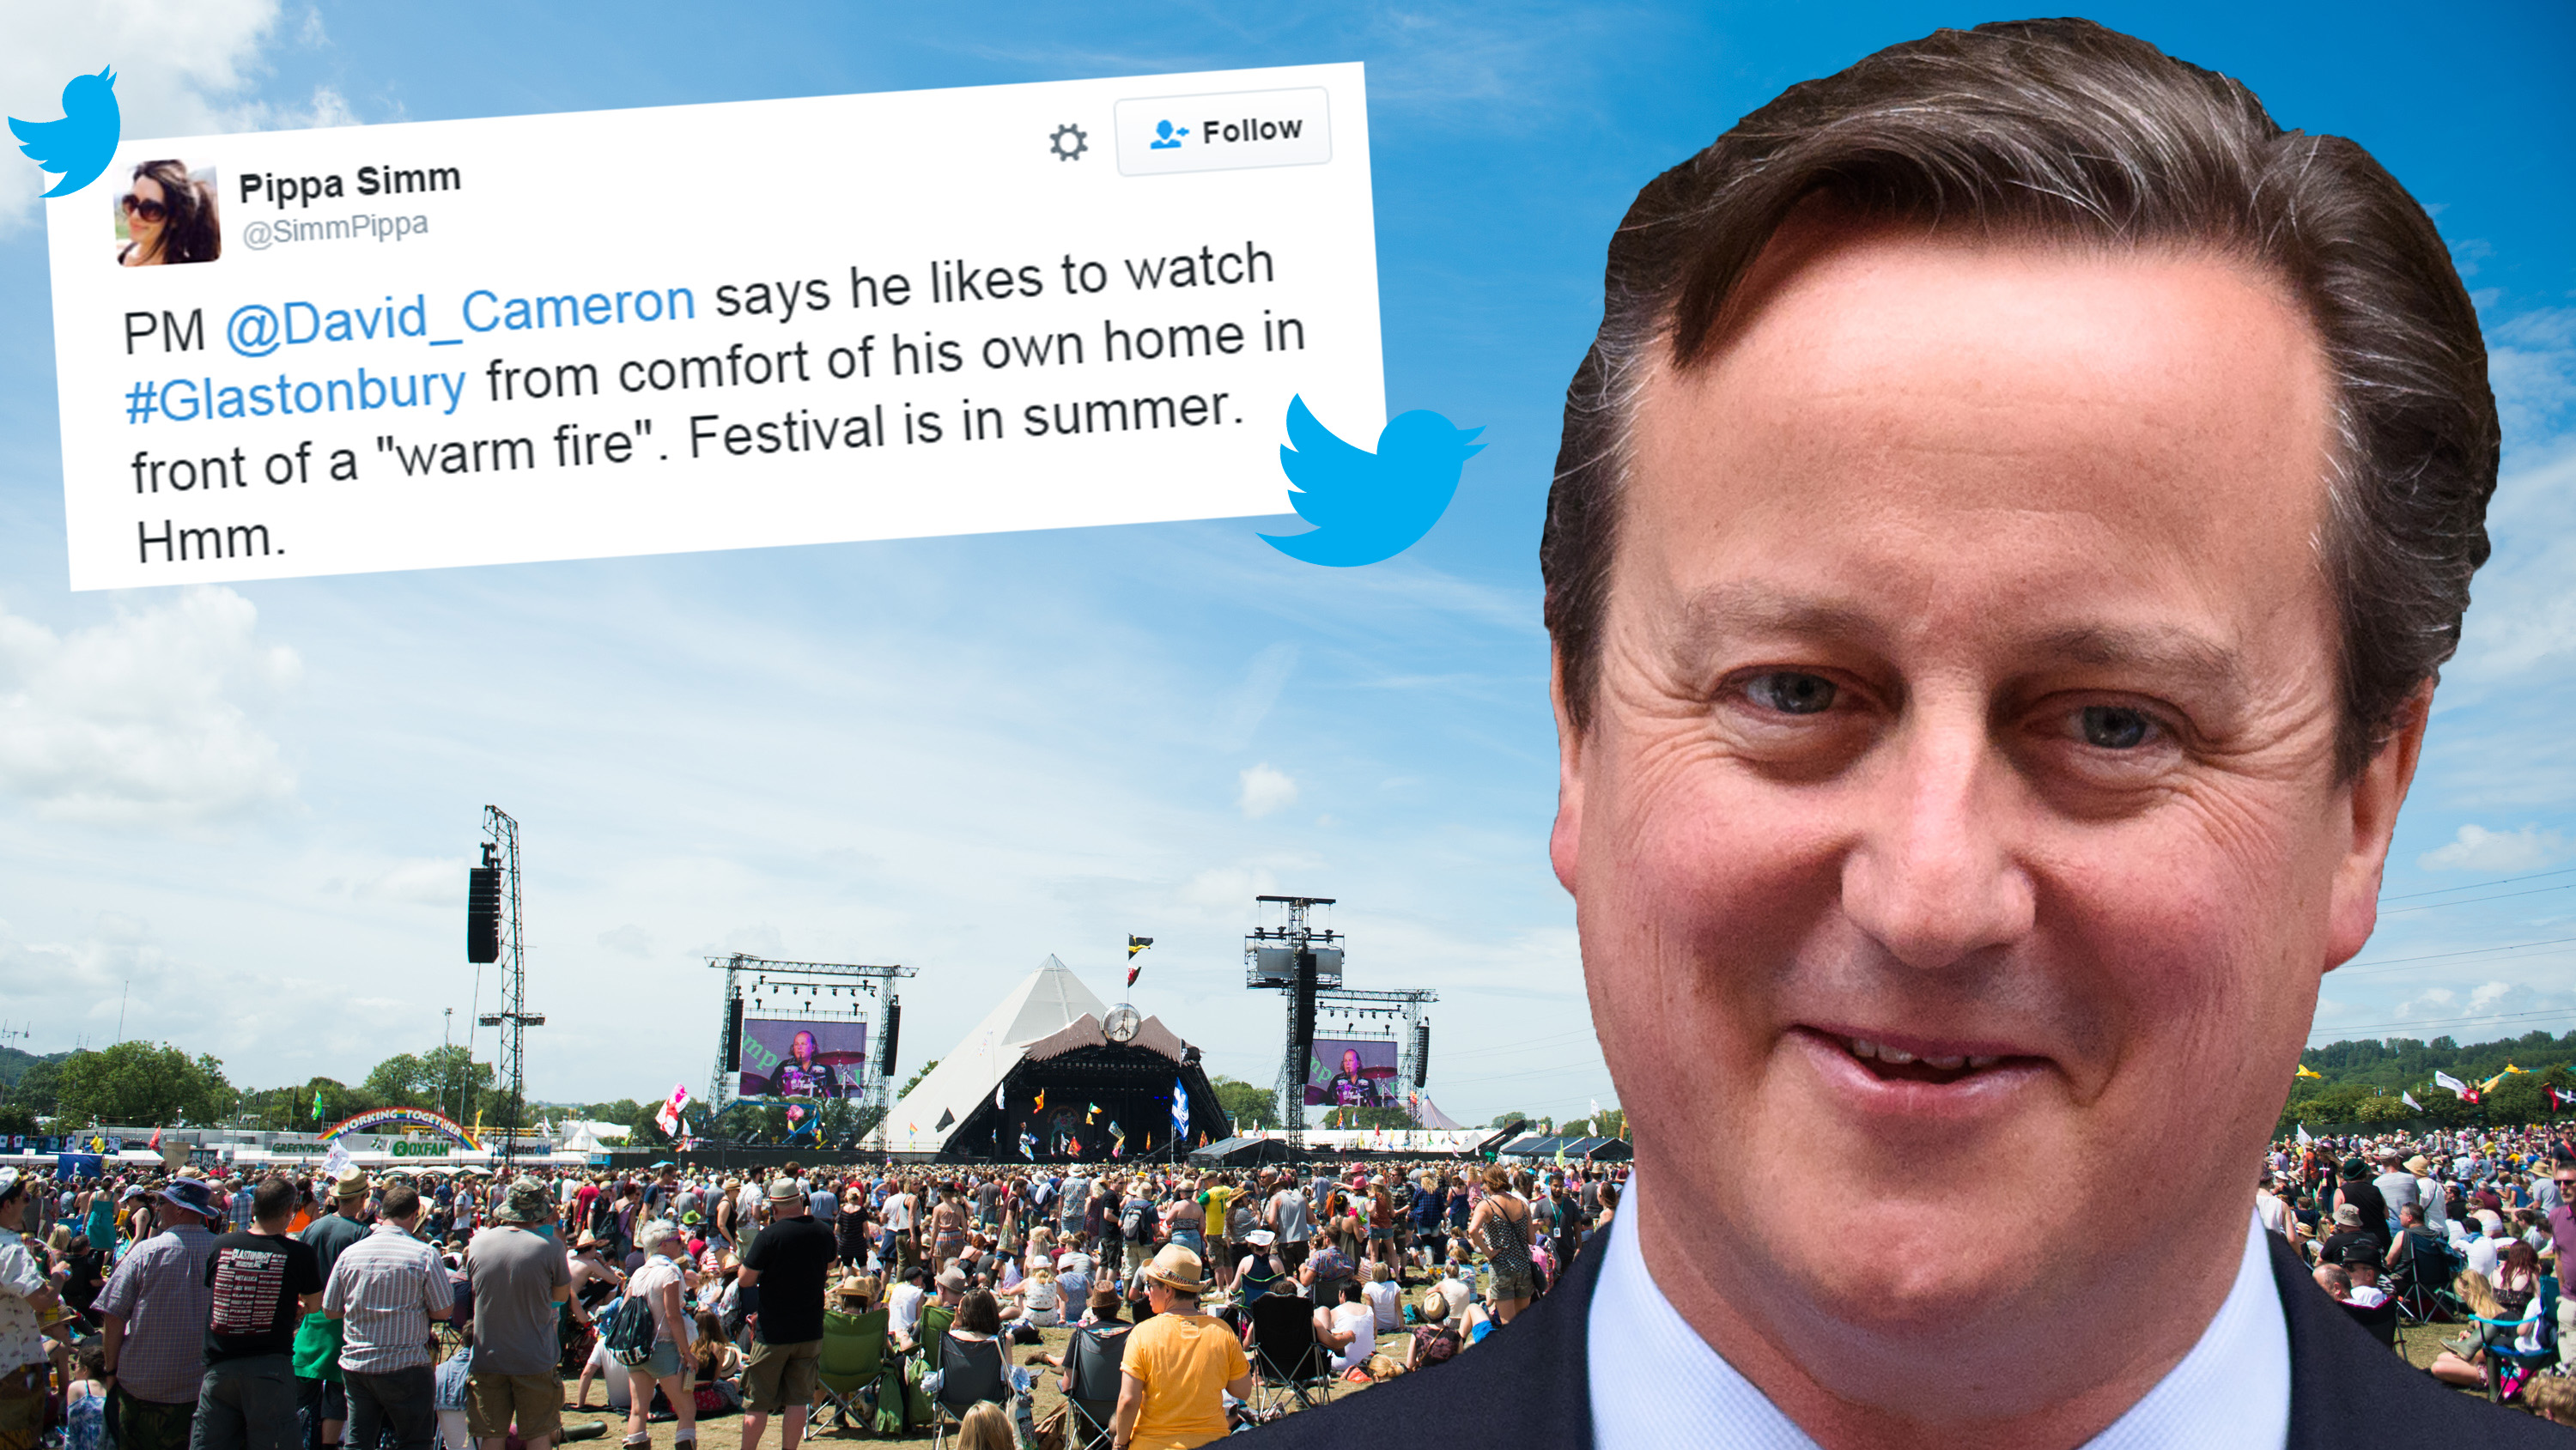 David Cameron likes to watch Glastonbury 'in front of a warm fire'. In June.